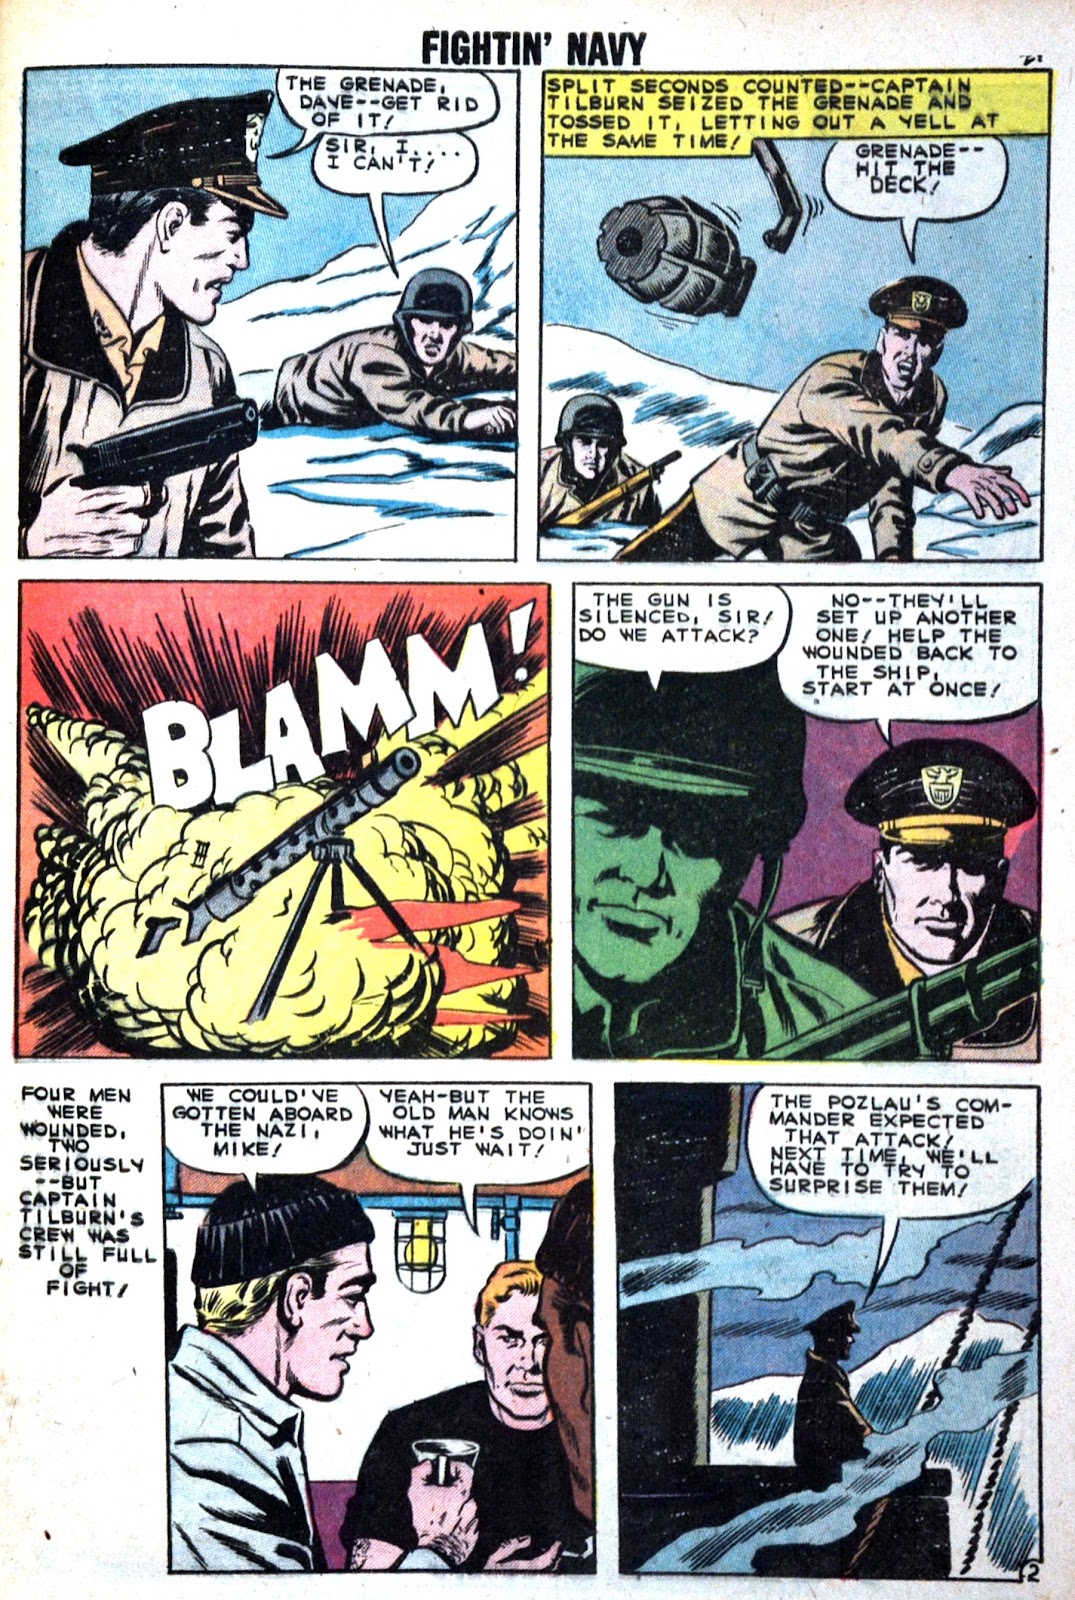 Read online Fightin' Navy comic -  Issue #89 - 29